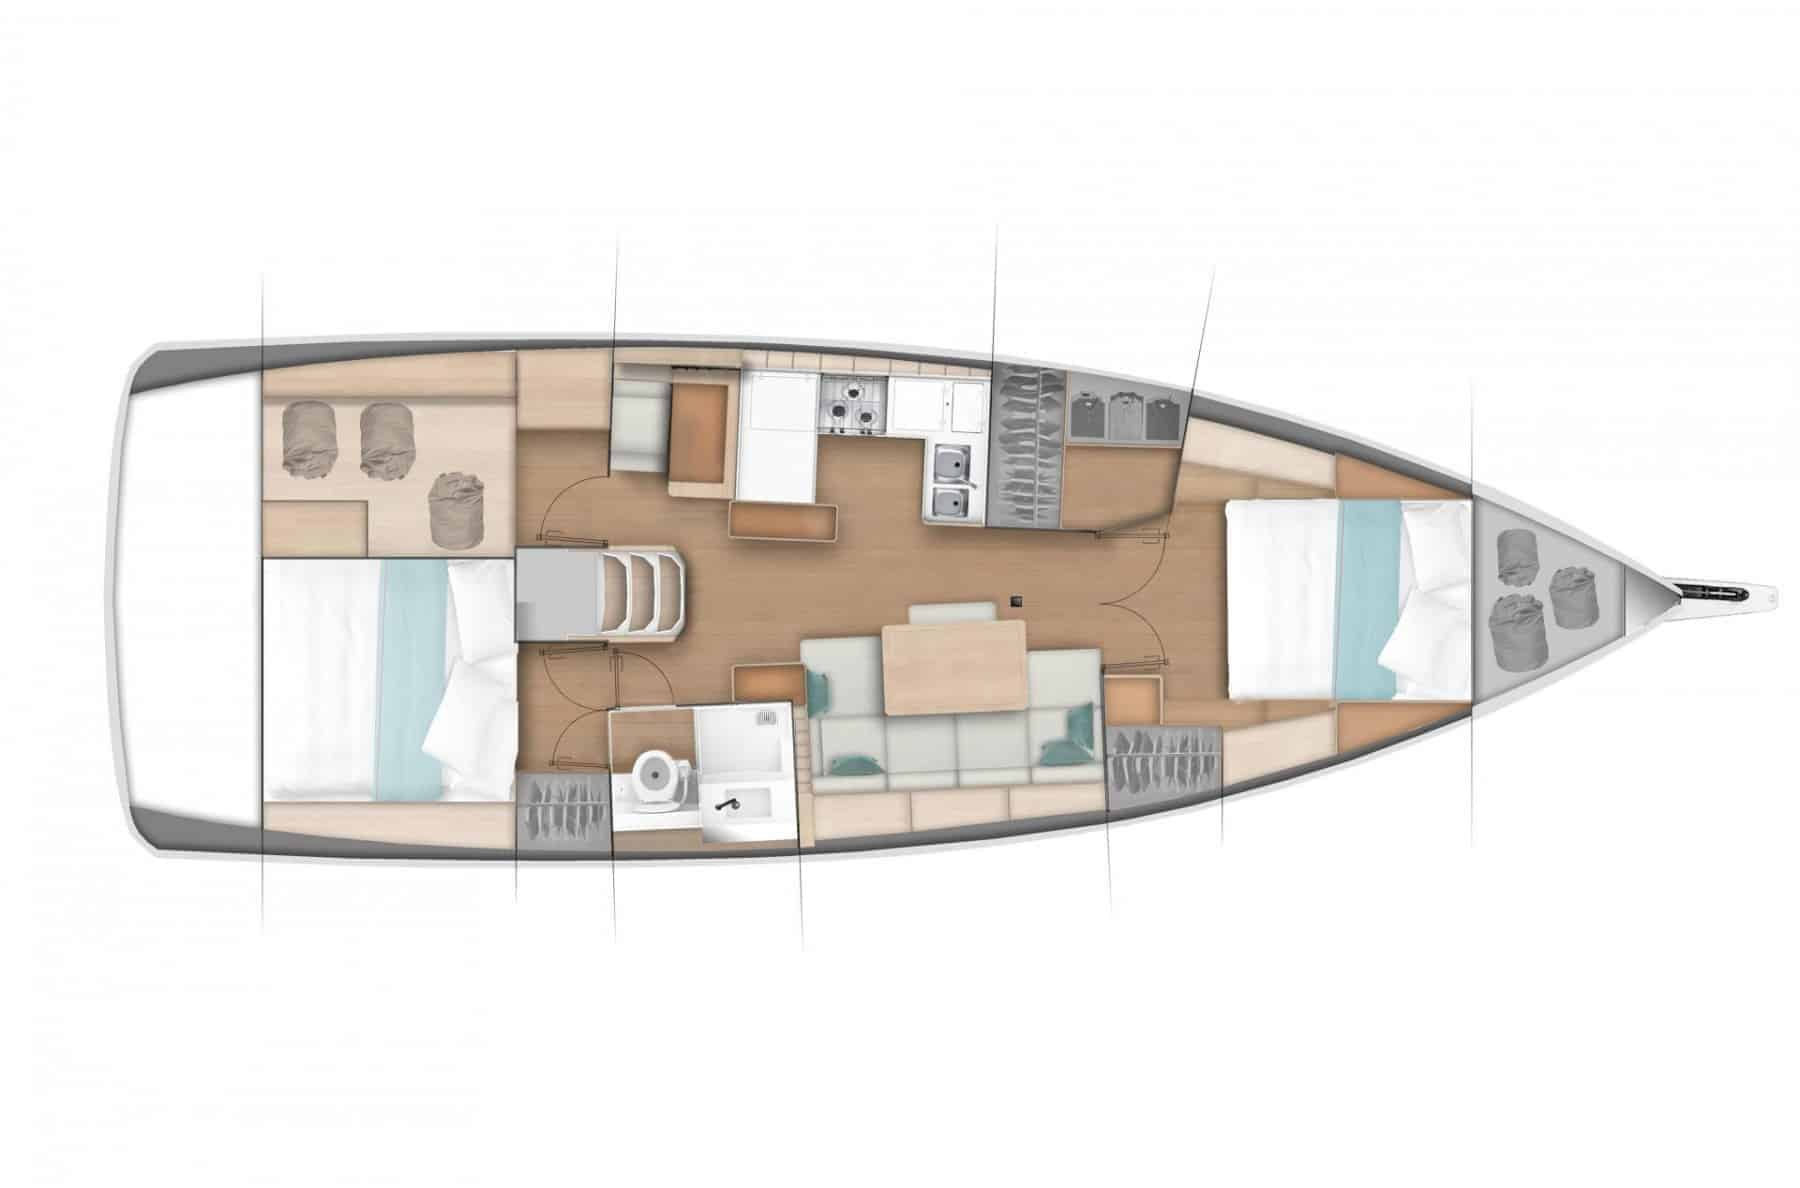 Overview of one of many hull options of the Jeanneau Sun Odyssey 440